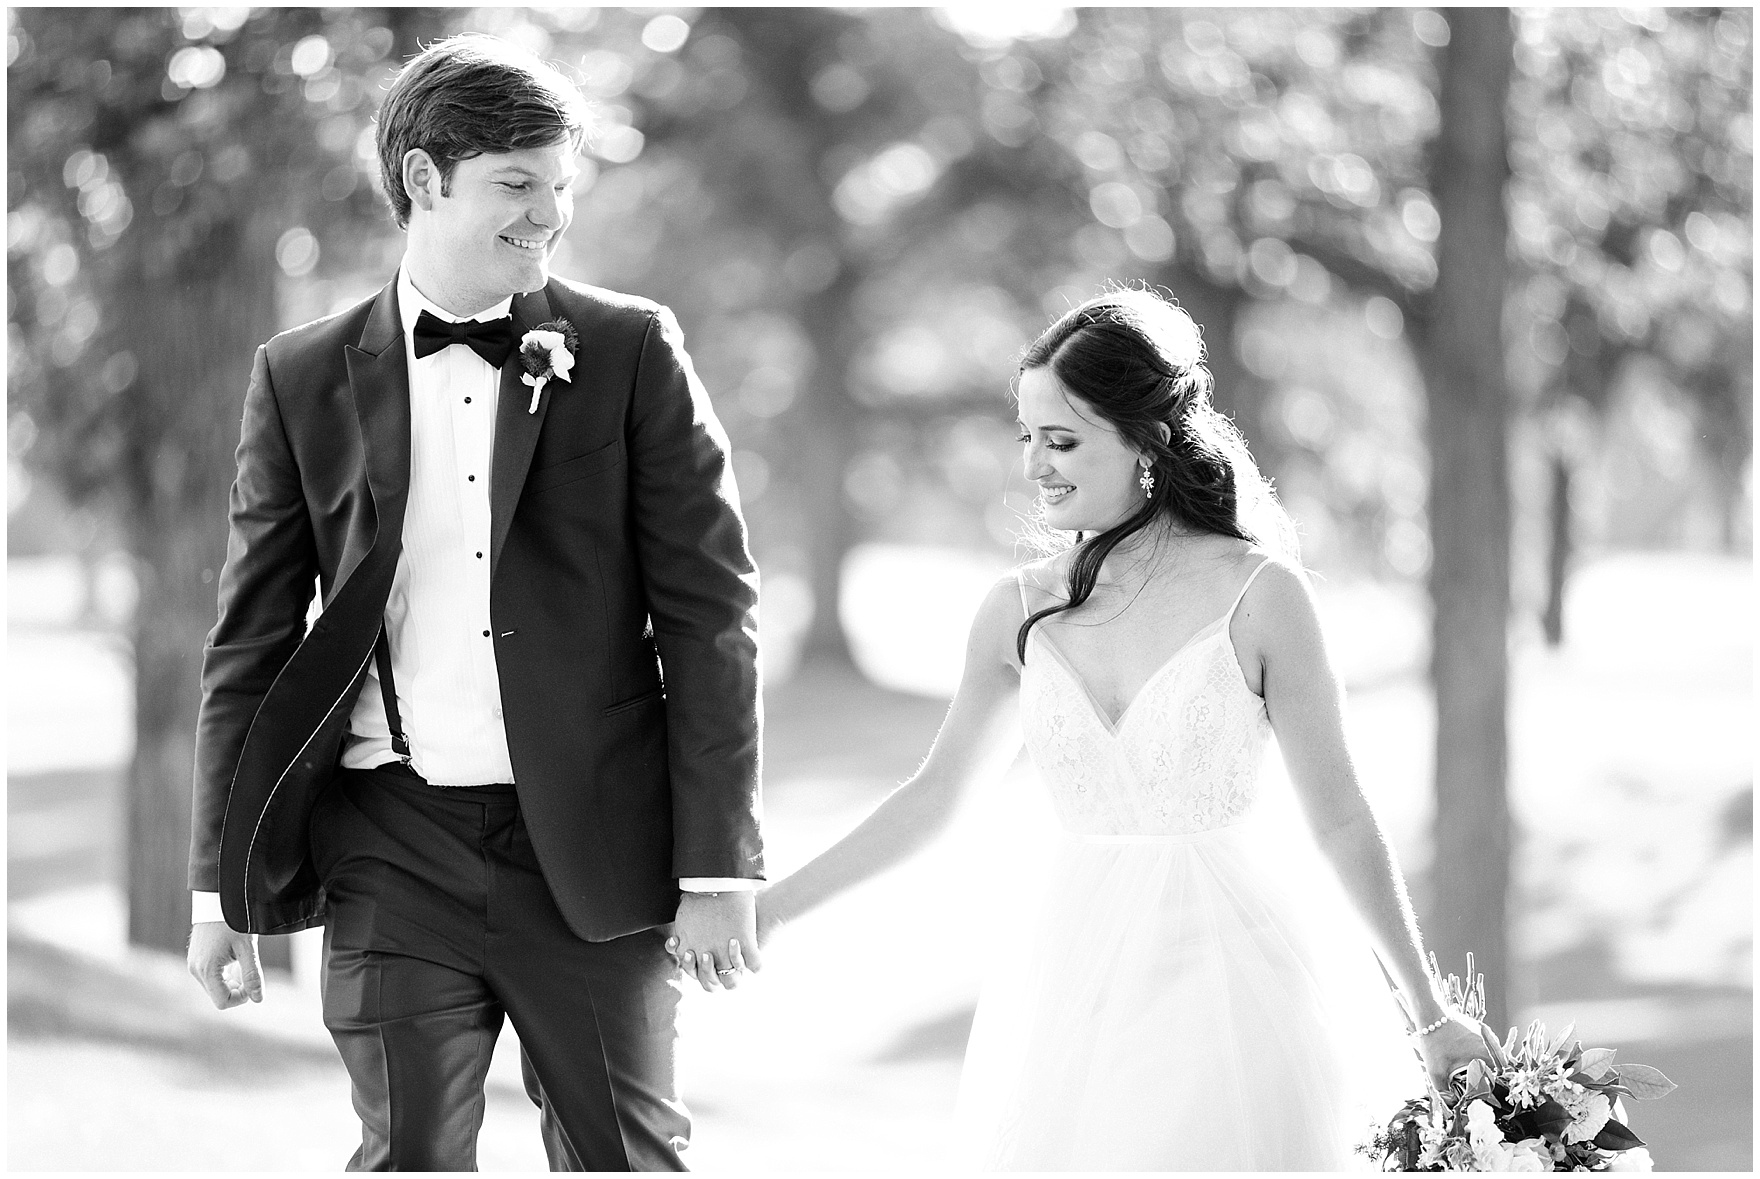 The bride and groom walk together during a Butterfield Country Club wedding.